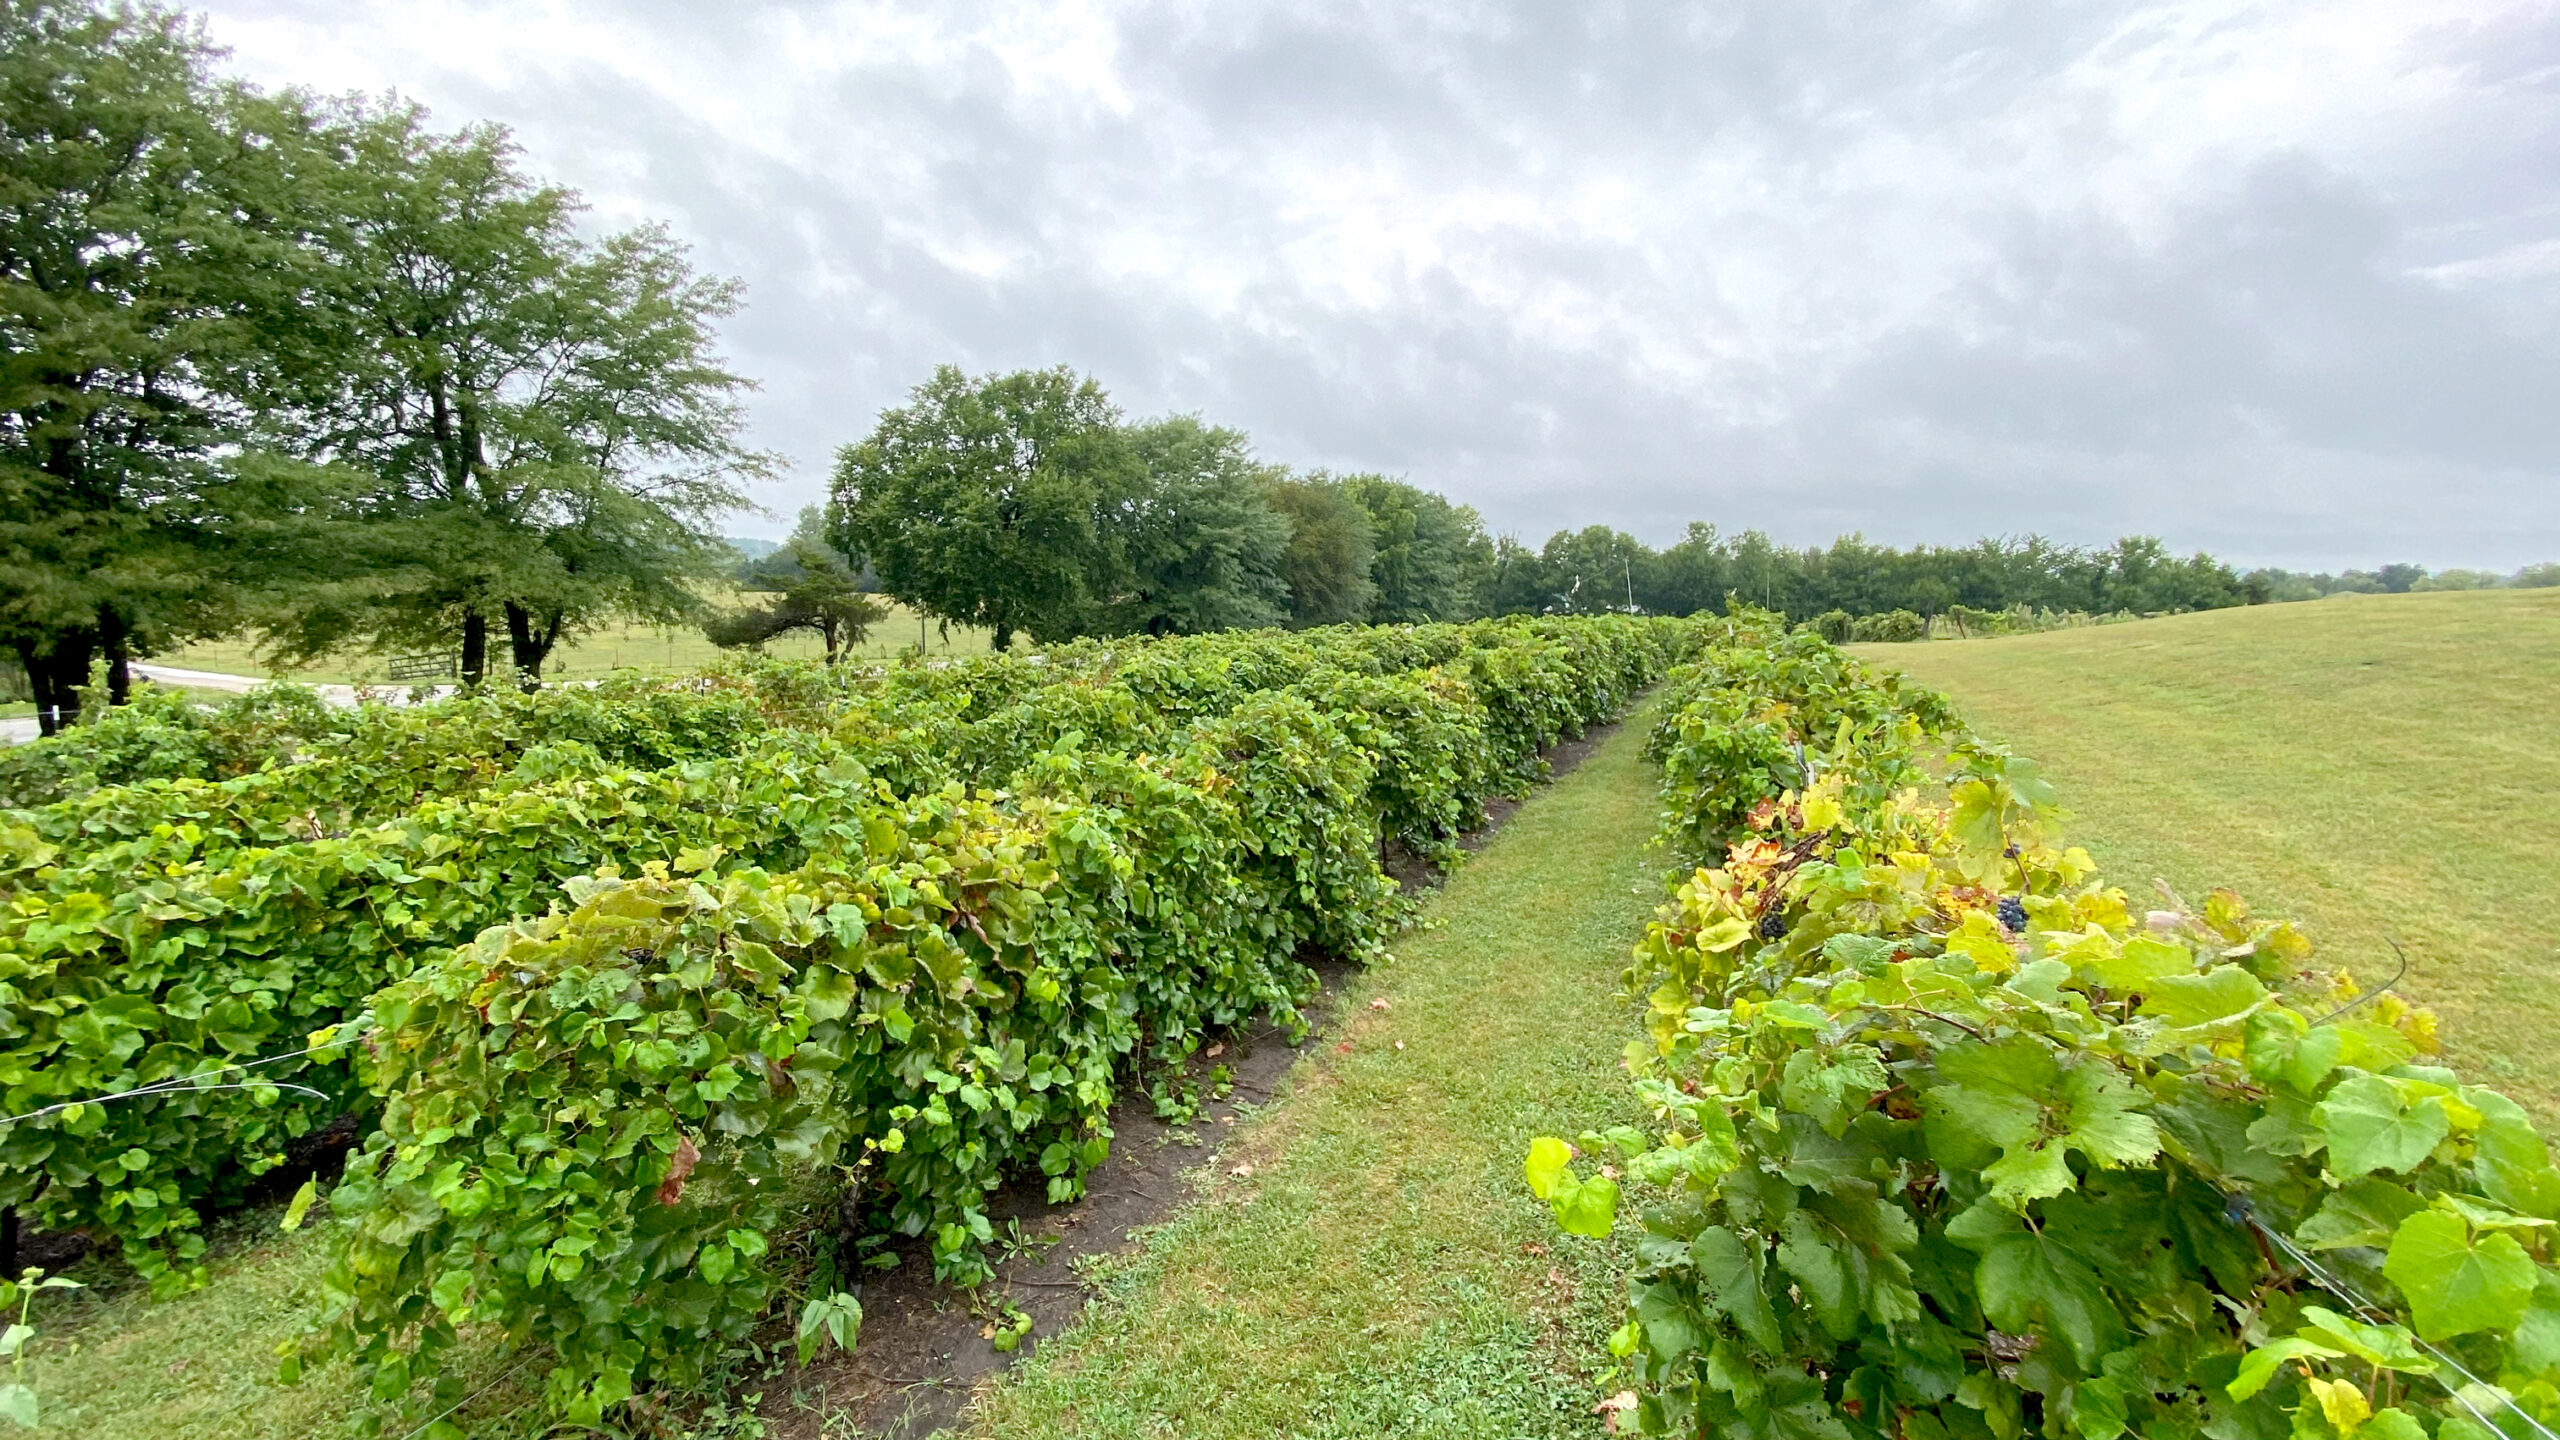 Vines of grapes